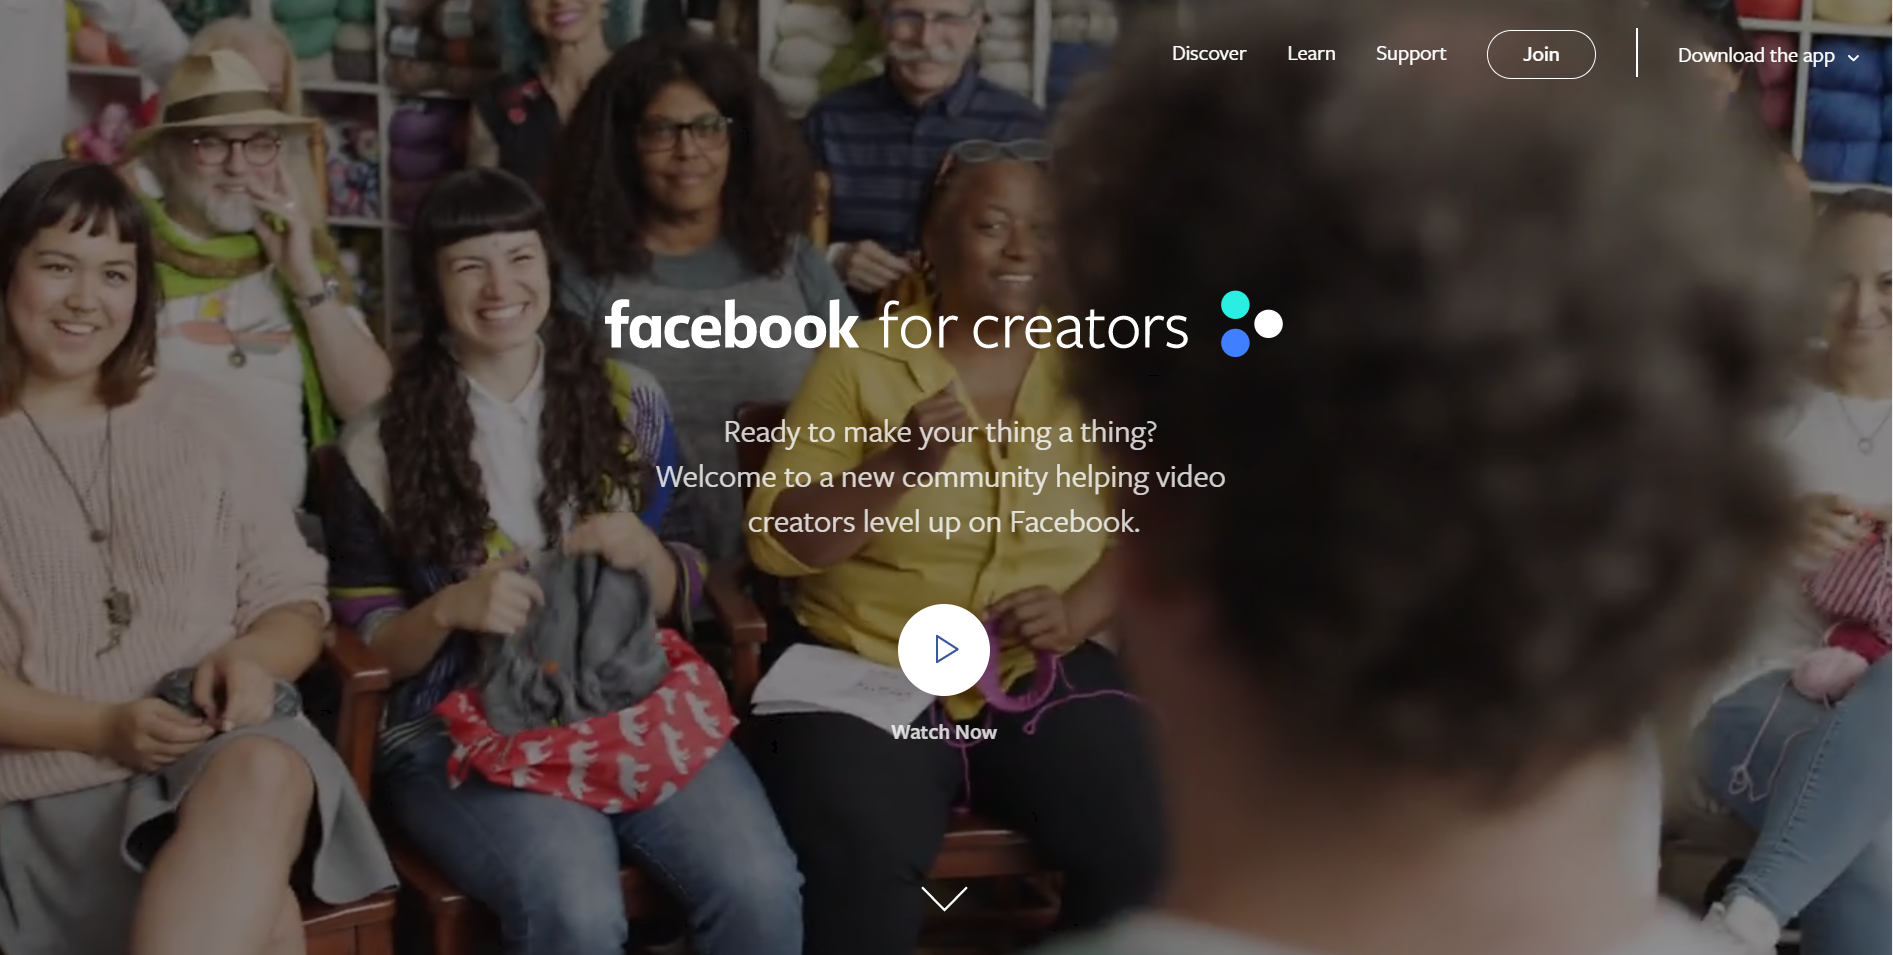 Facebook Live and The Facebook Creator App